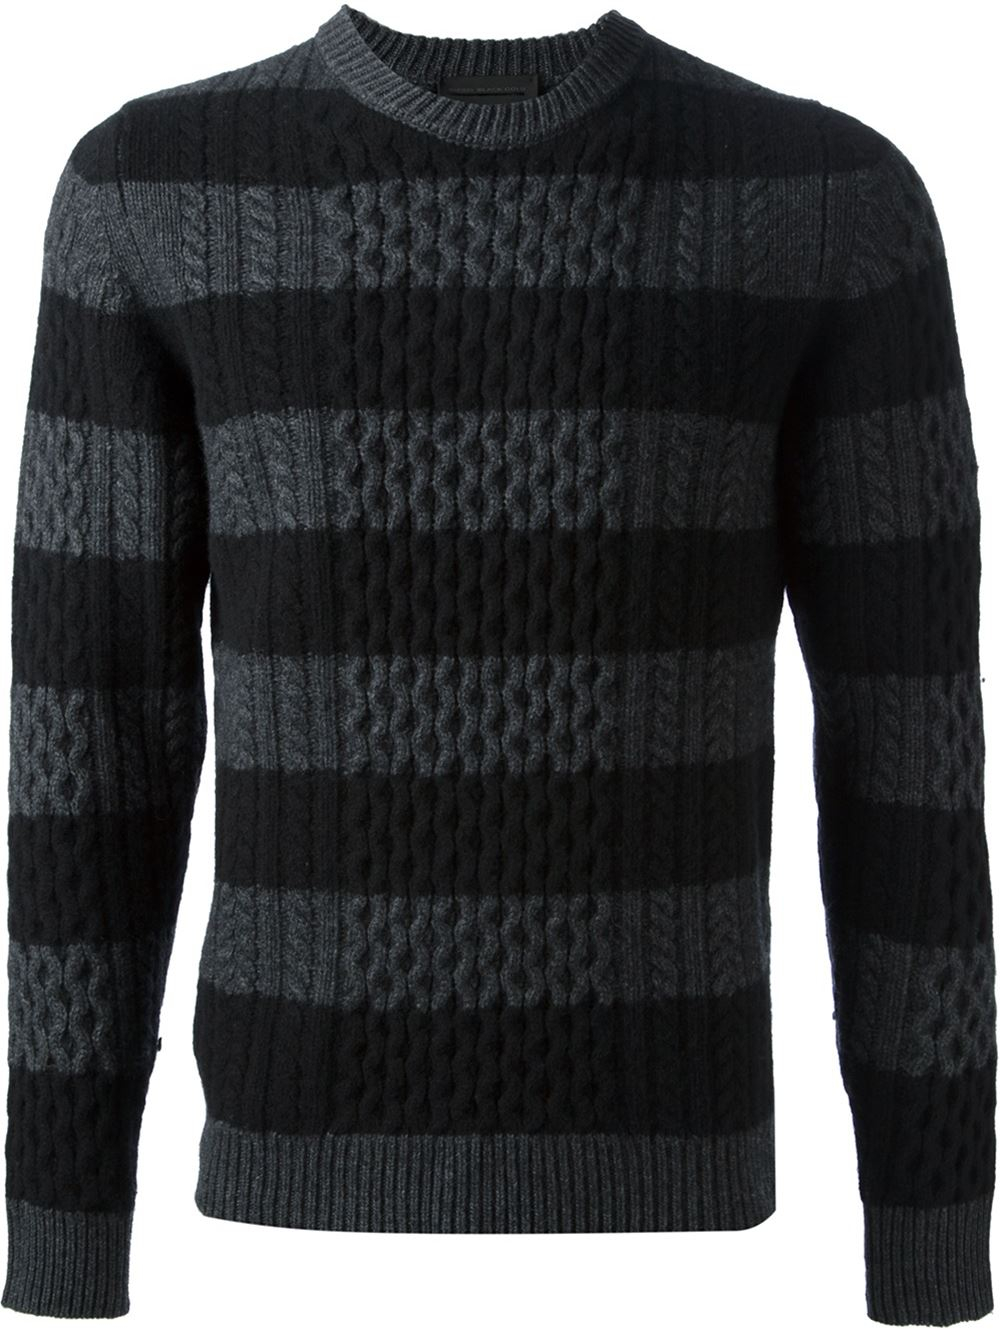 d8aefc3e8d Lyst - Diesel Black Gold Striped Cable Knit Sweater in Black for Men